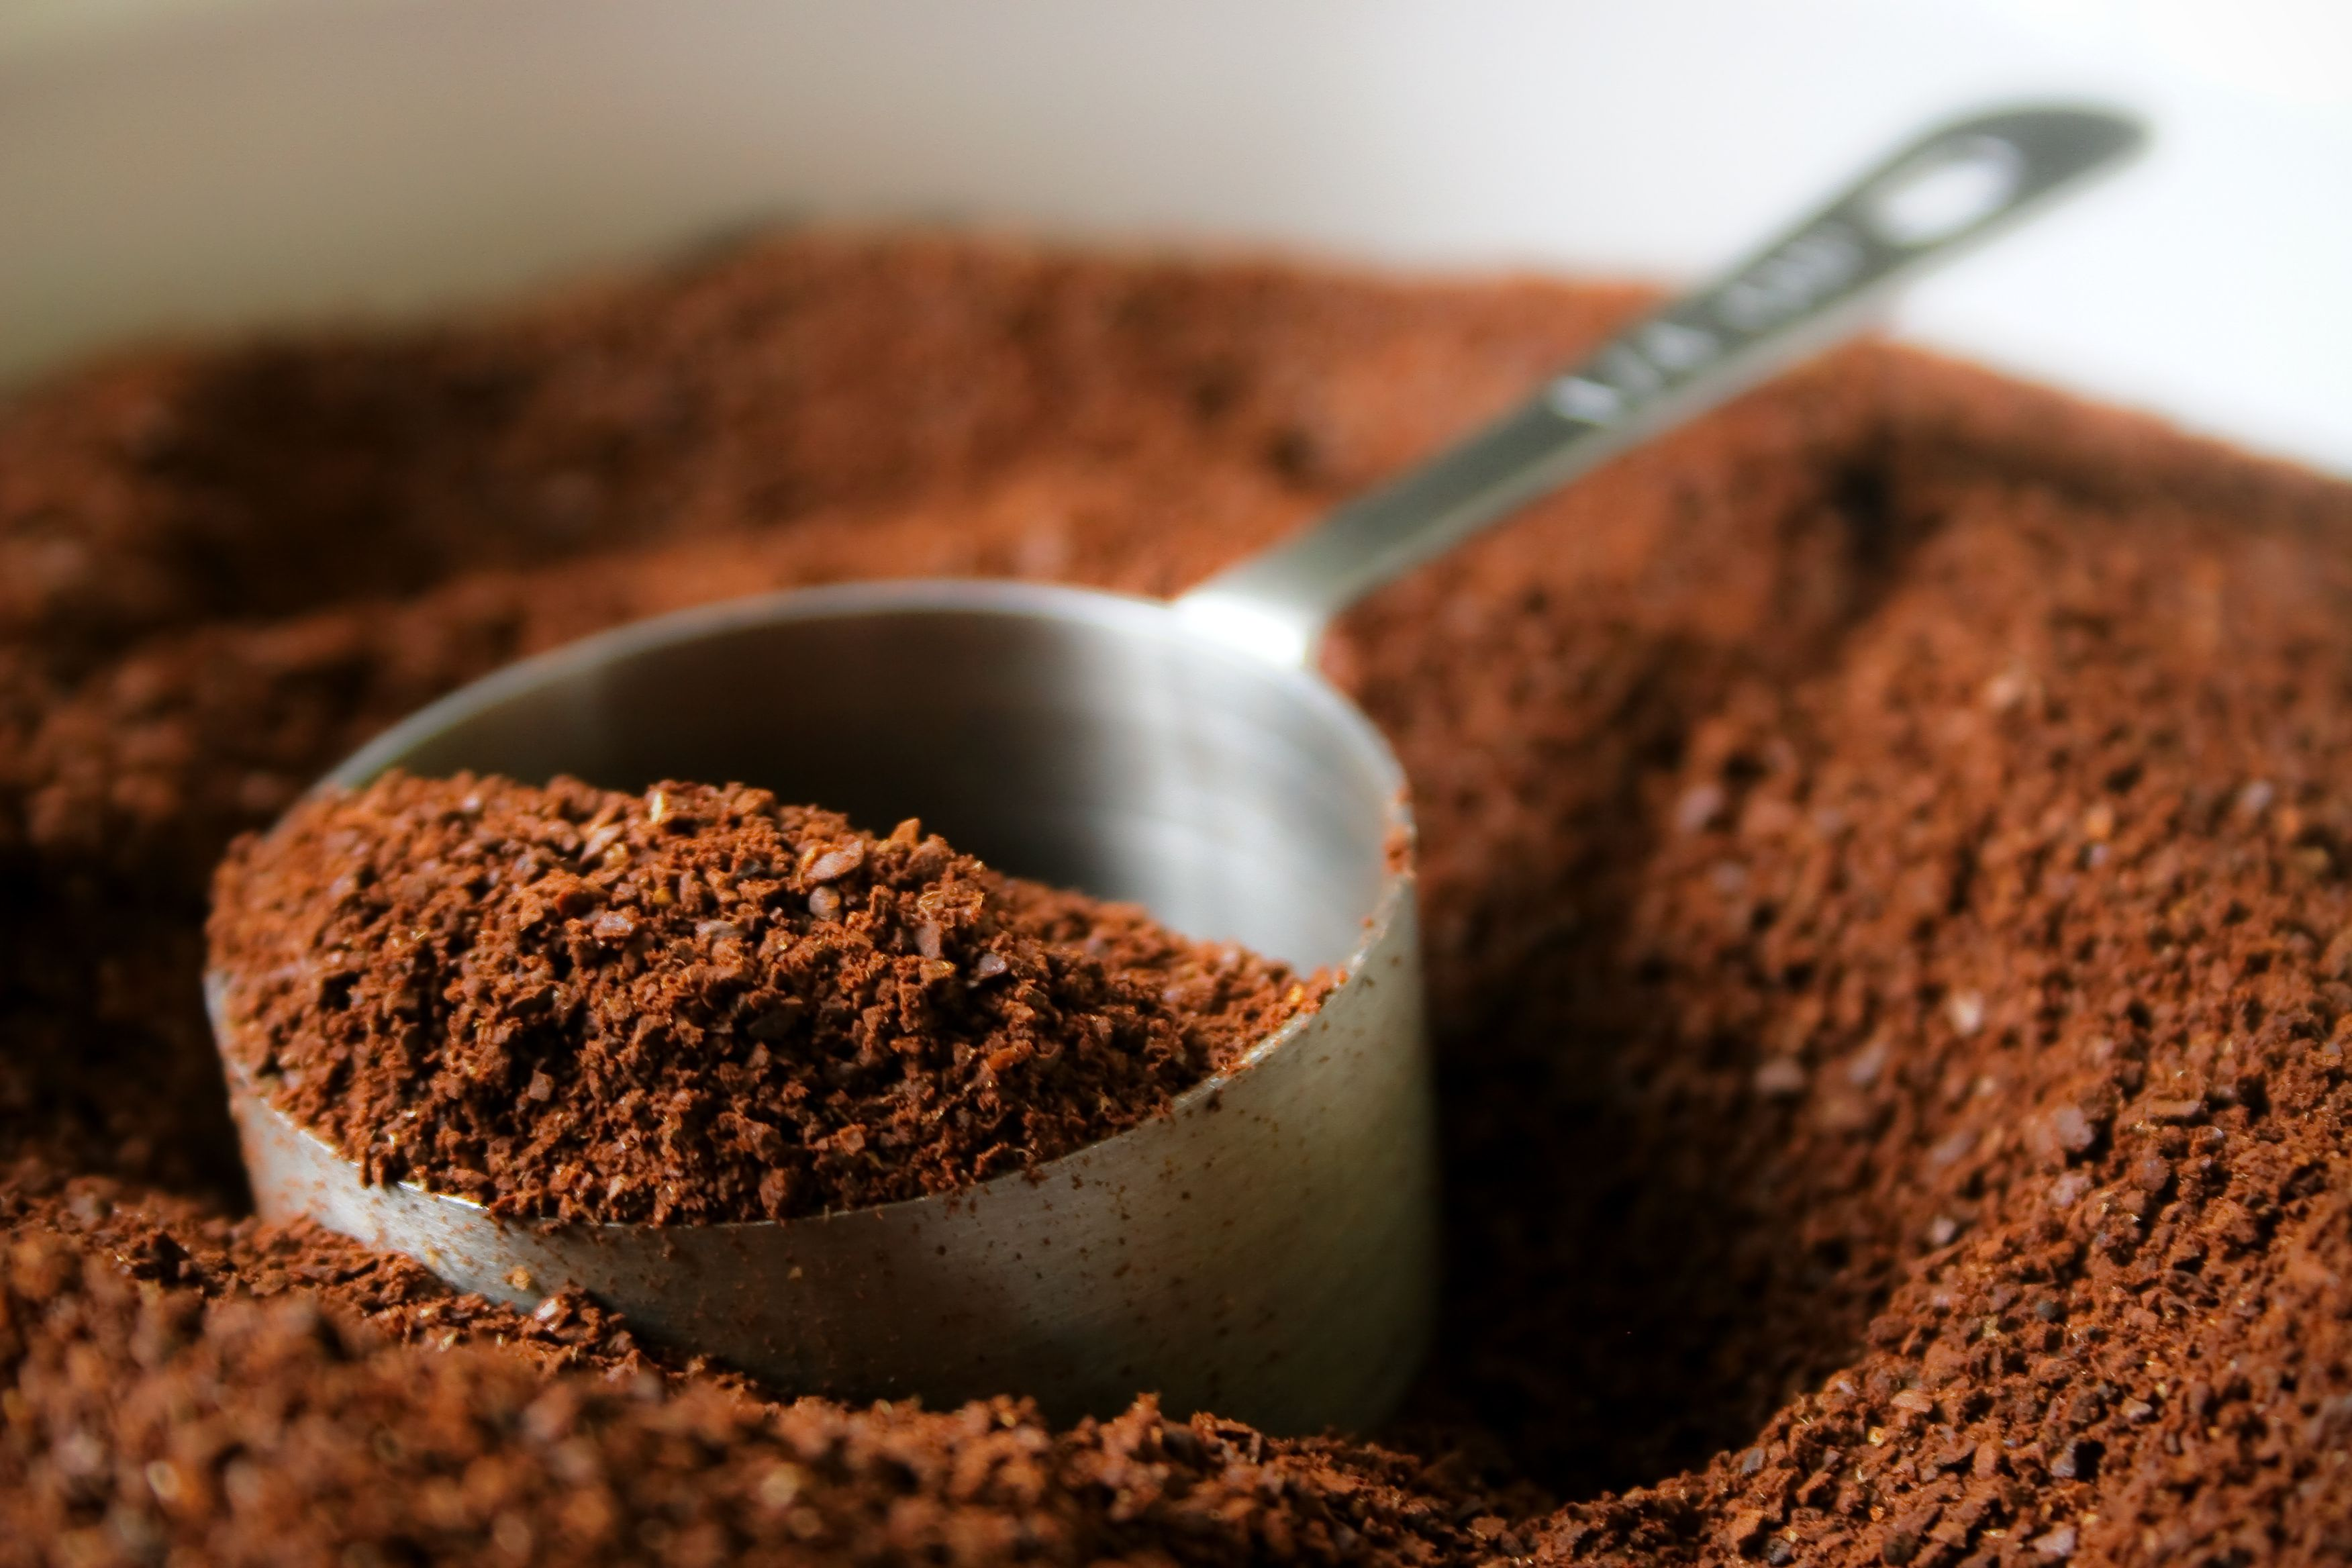 New Uses for Coffee Grounds - Suprising Ways to Use Coffee Grounds